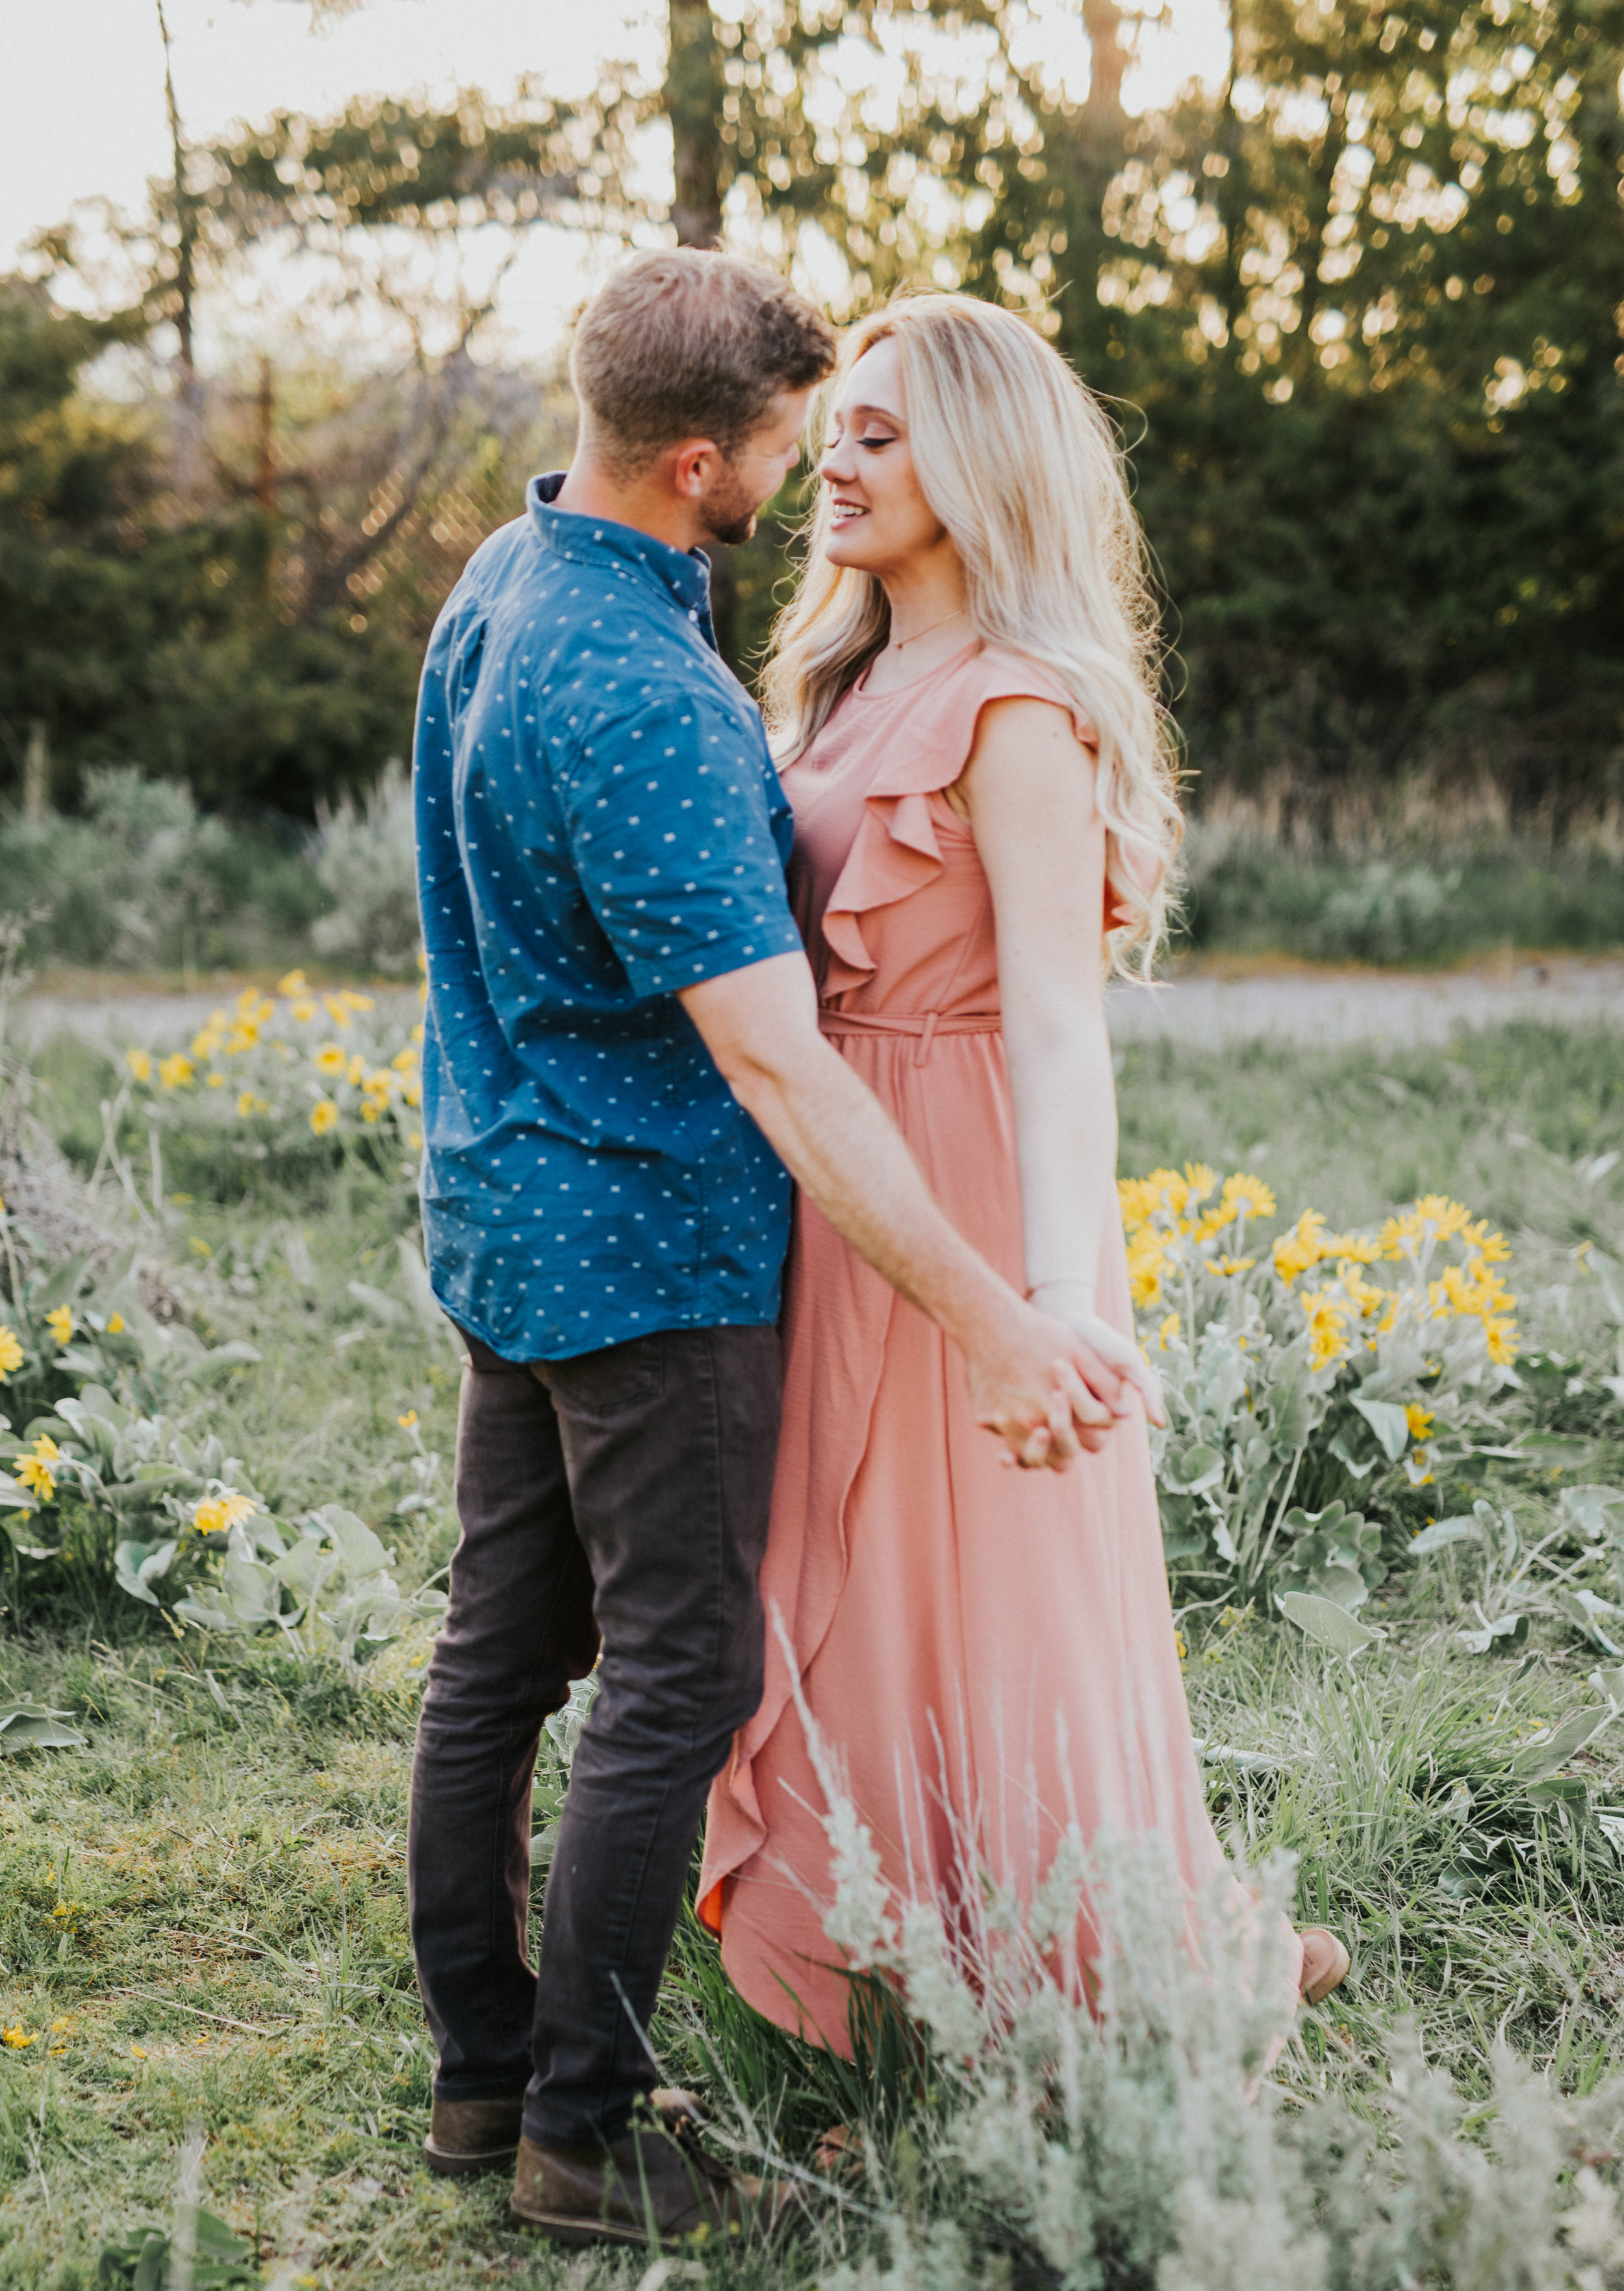 the focus collective workshop photographer workshop mentor session blue and pink outfit inspo semi casual outfit engagement session posing ideas for couples couple standing in a field location ideas for engagement photos engagement photo ideas couple holding hands engagement outfit inspo what to wear to engagement sessions #loganutah #utahweddingphotogapher #engagements #cachevalleyweddingphotographer #couplegoals #engagementsession #engagementphotos #relationshipgoals #bridetobe #mrandmrs